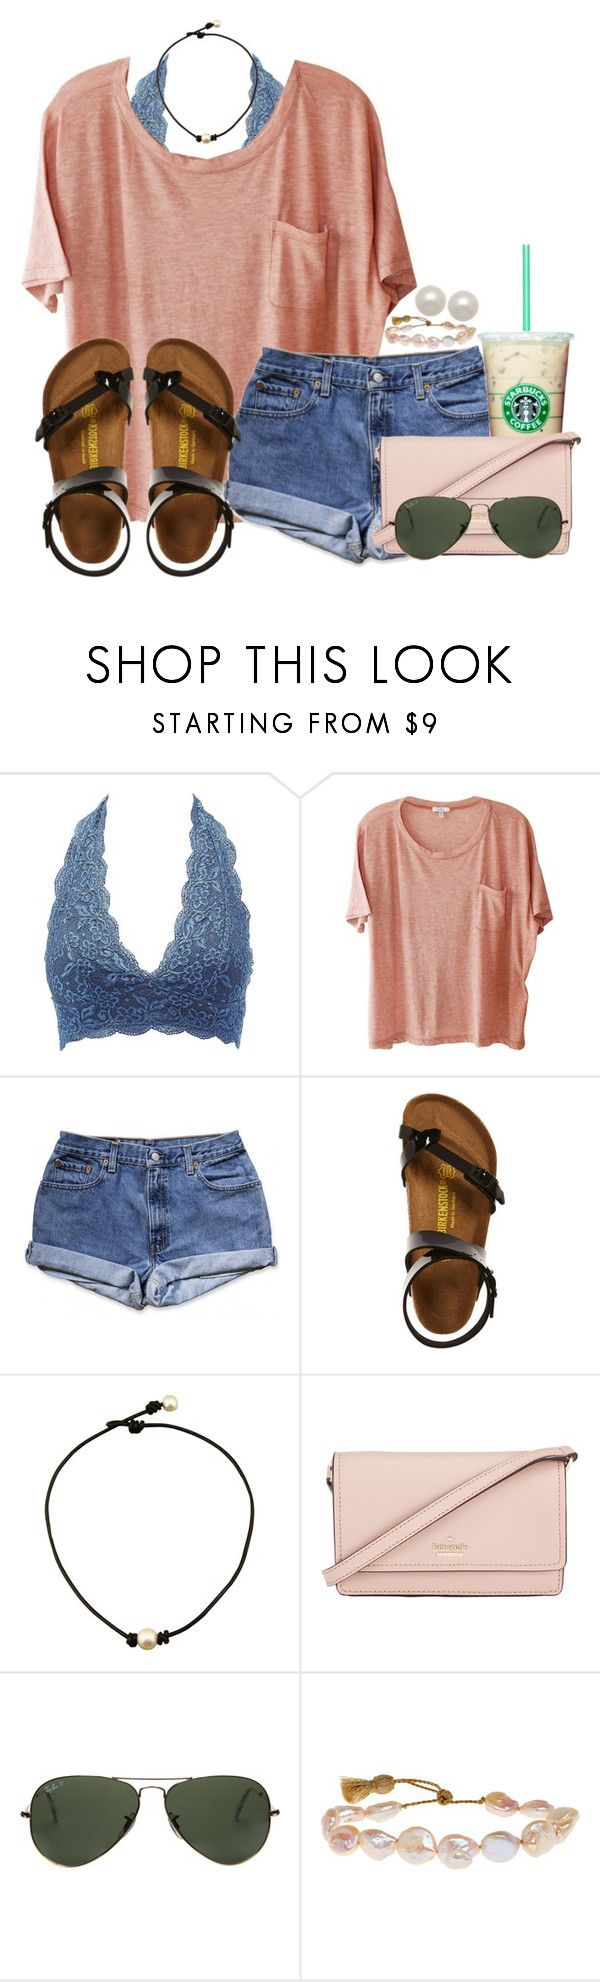 RTD! by annaewakefield ❤ liked on Polyvore featuring Charlotte Russe, Clu, Birkenstock, Kate Spade, Ray-Ban, Lena Skadegard and Honora